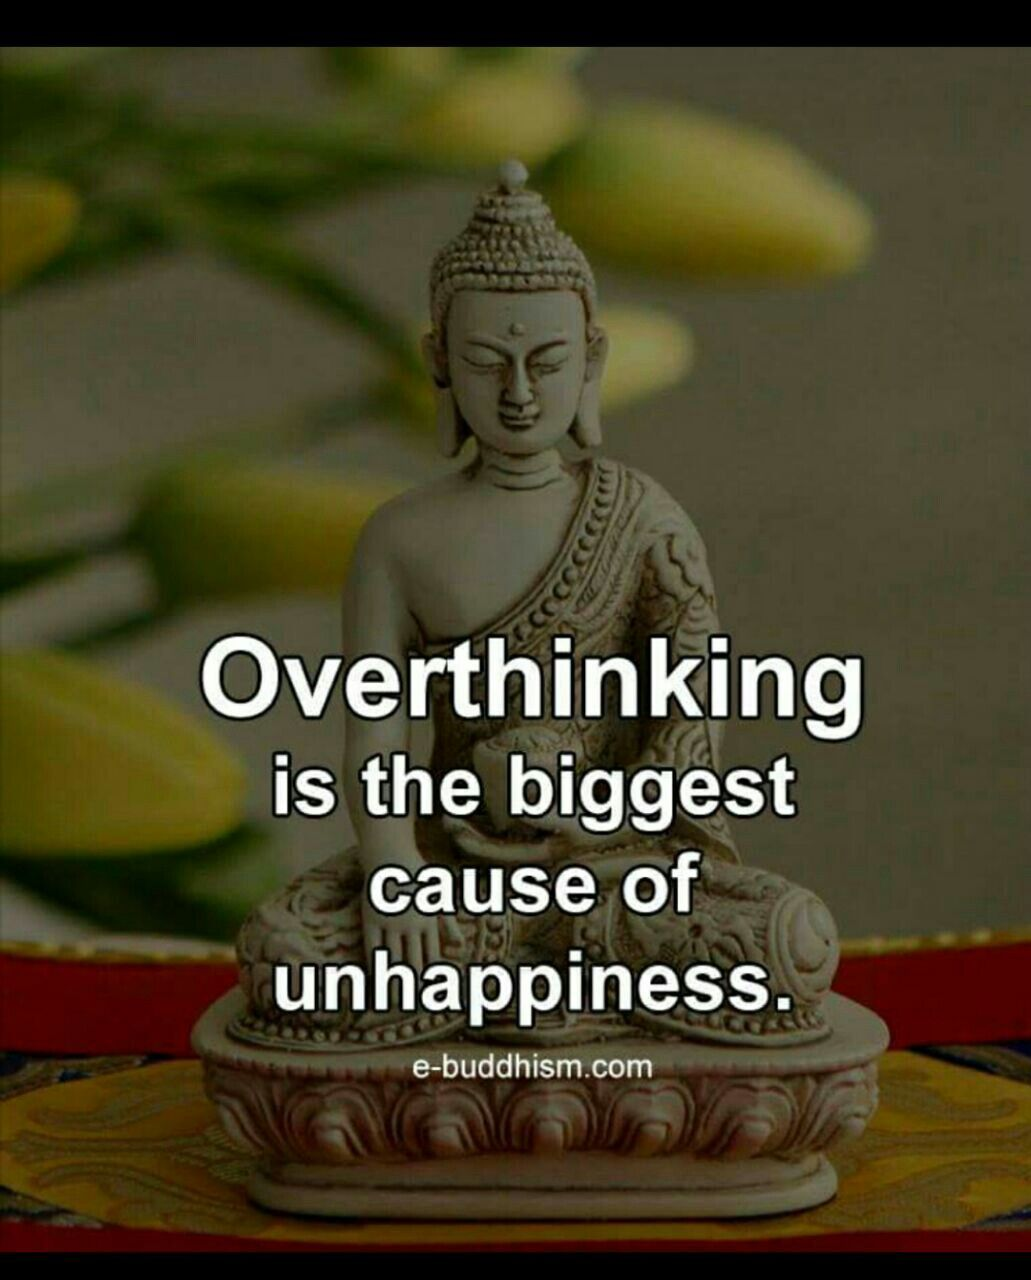 Buddhist Quotes Facebook: Quotes, Inspirational